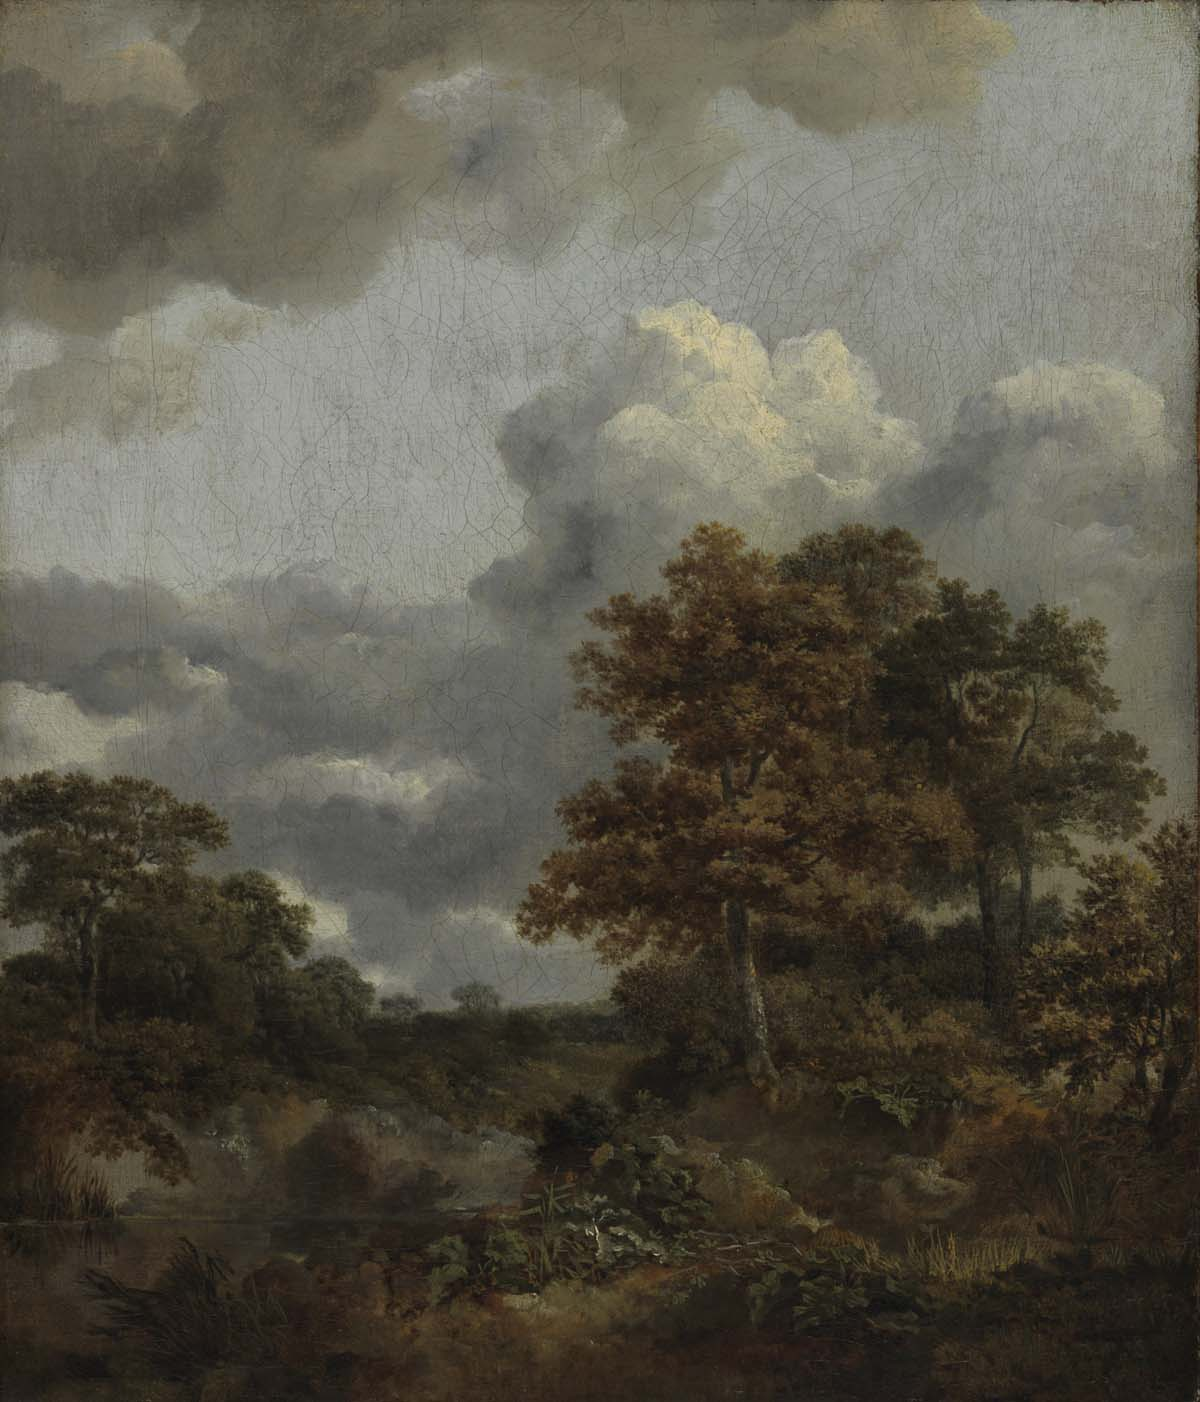 oil painting of trees beneath a cloudy sky next to a pool